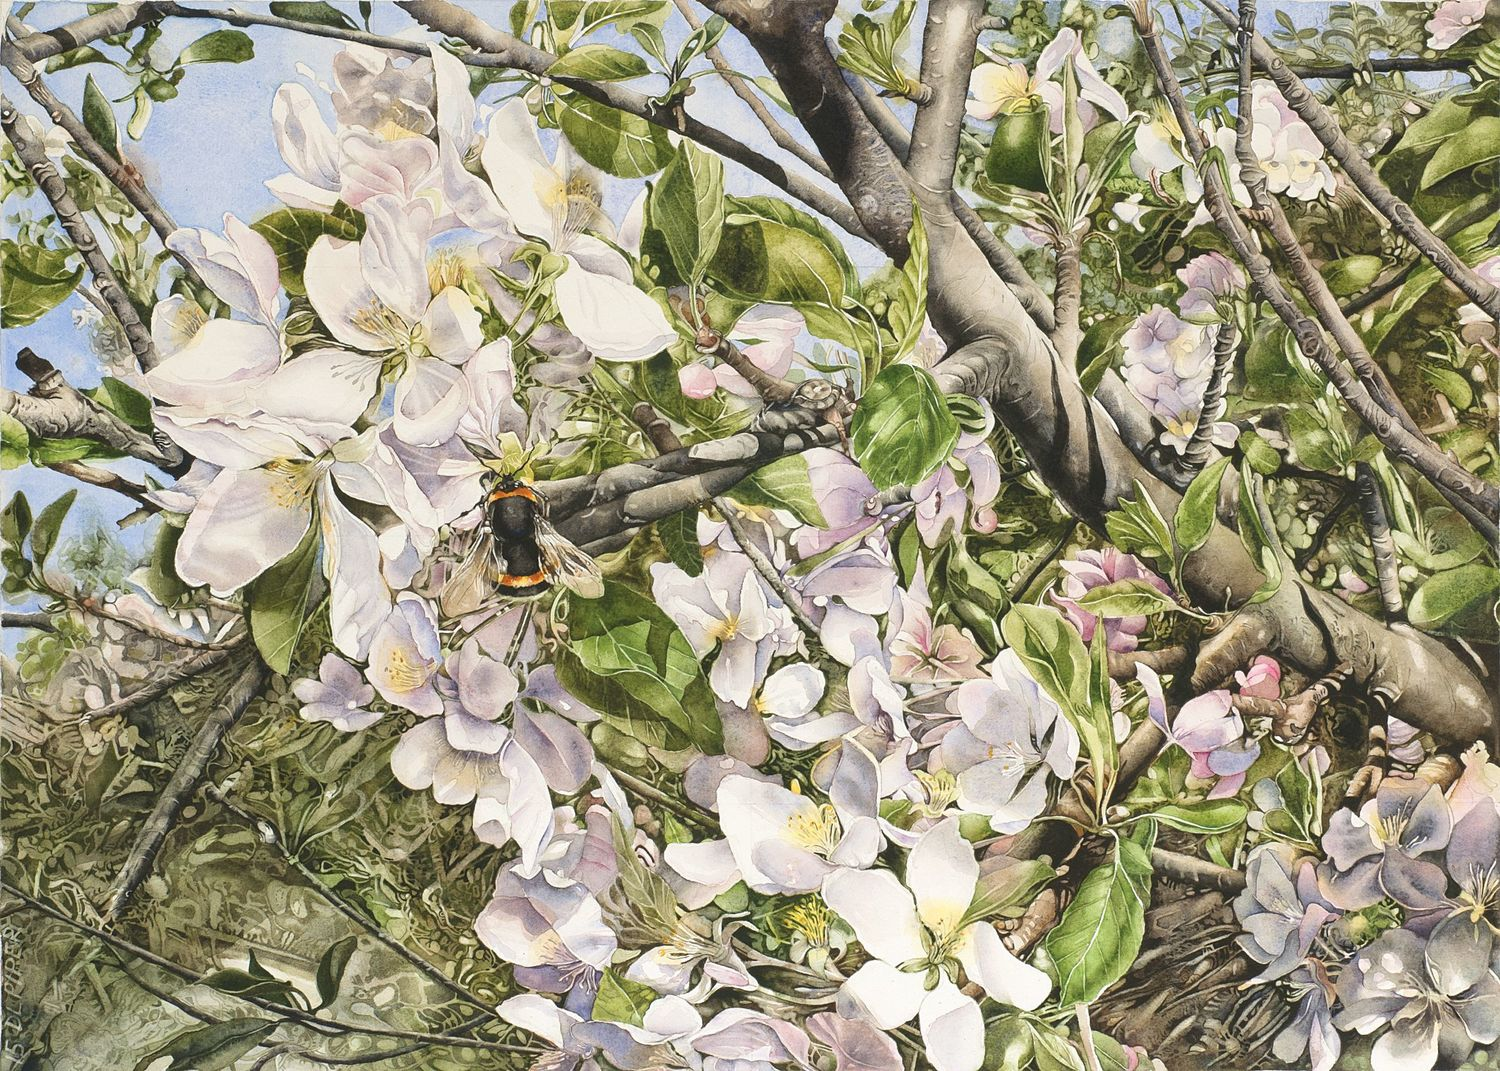 Apple Blossom with Bumblebee